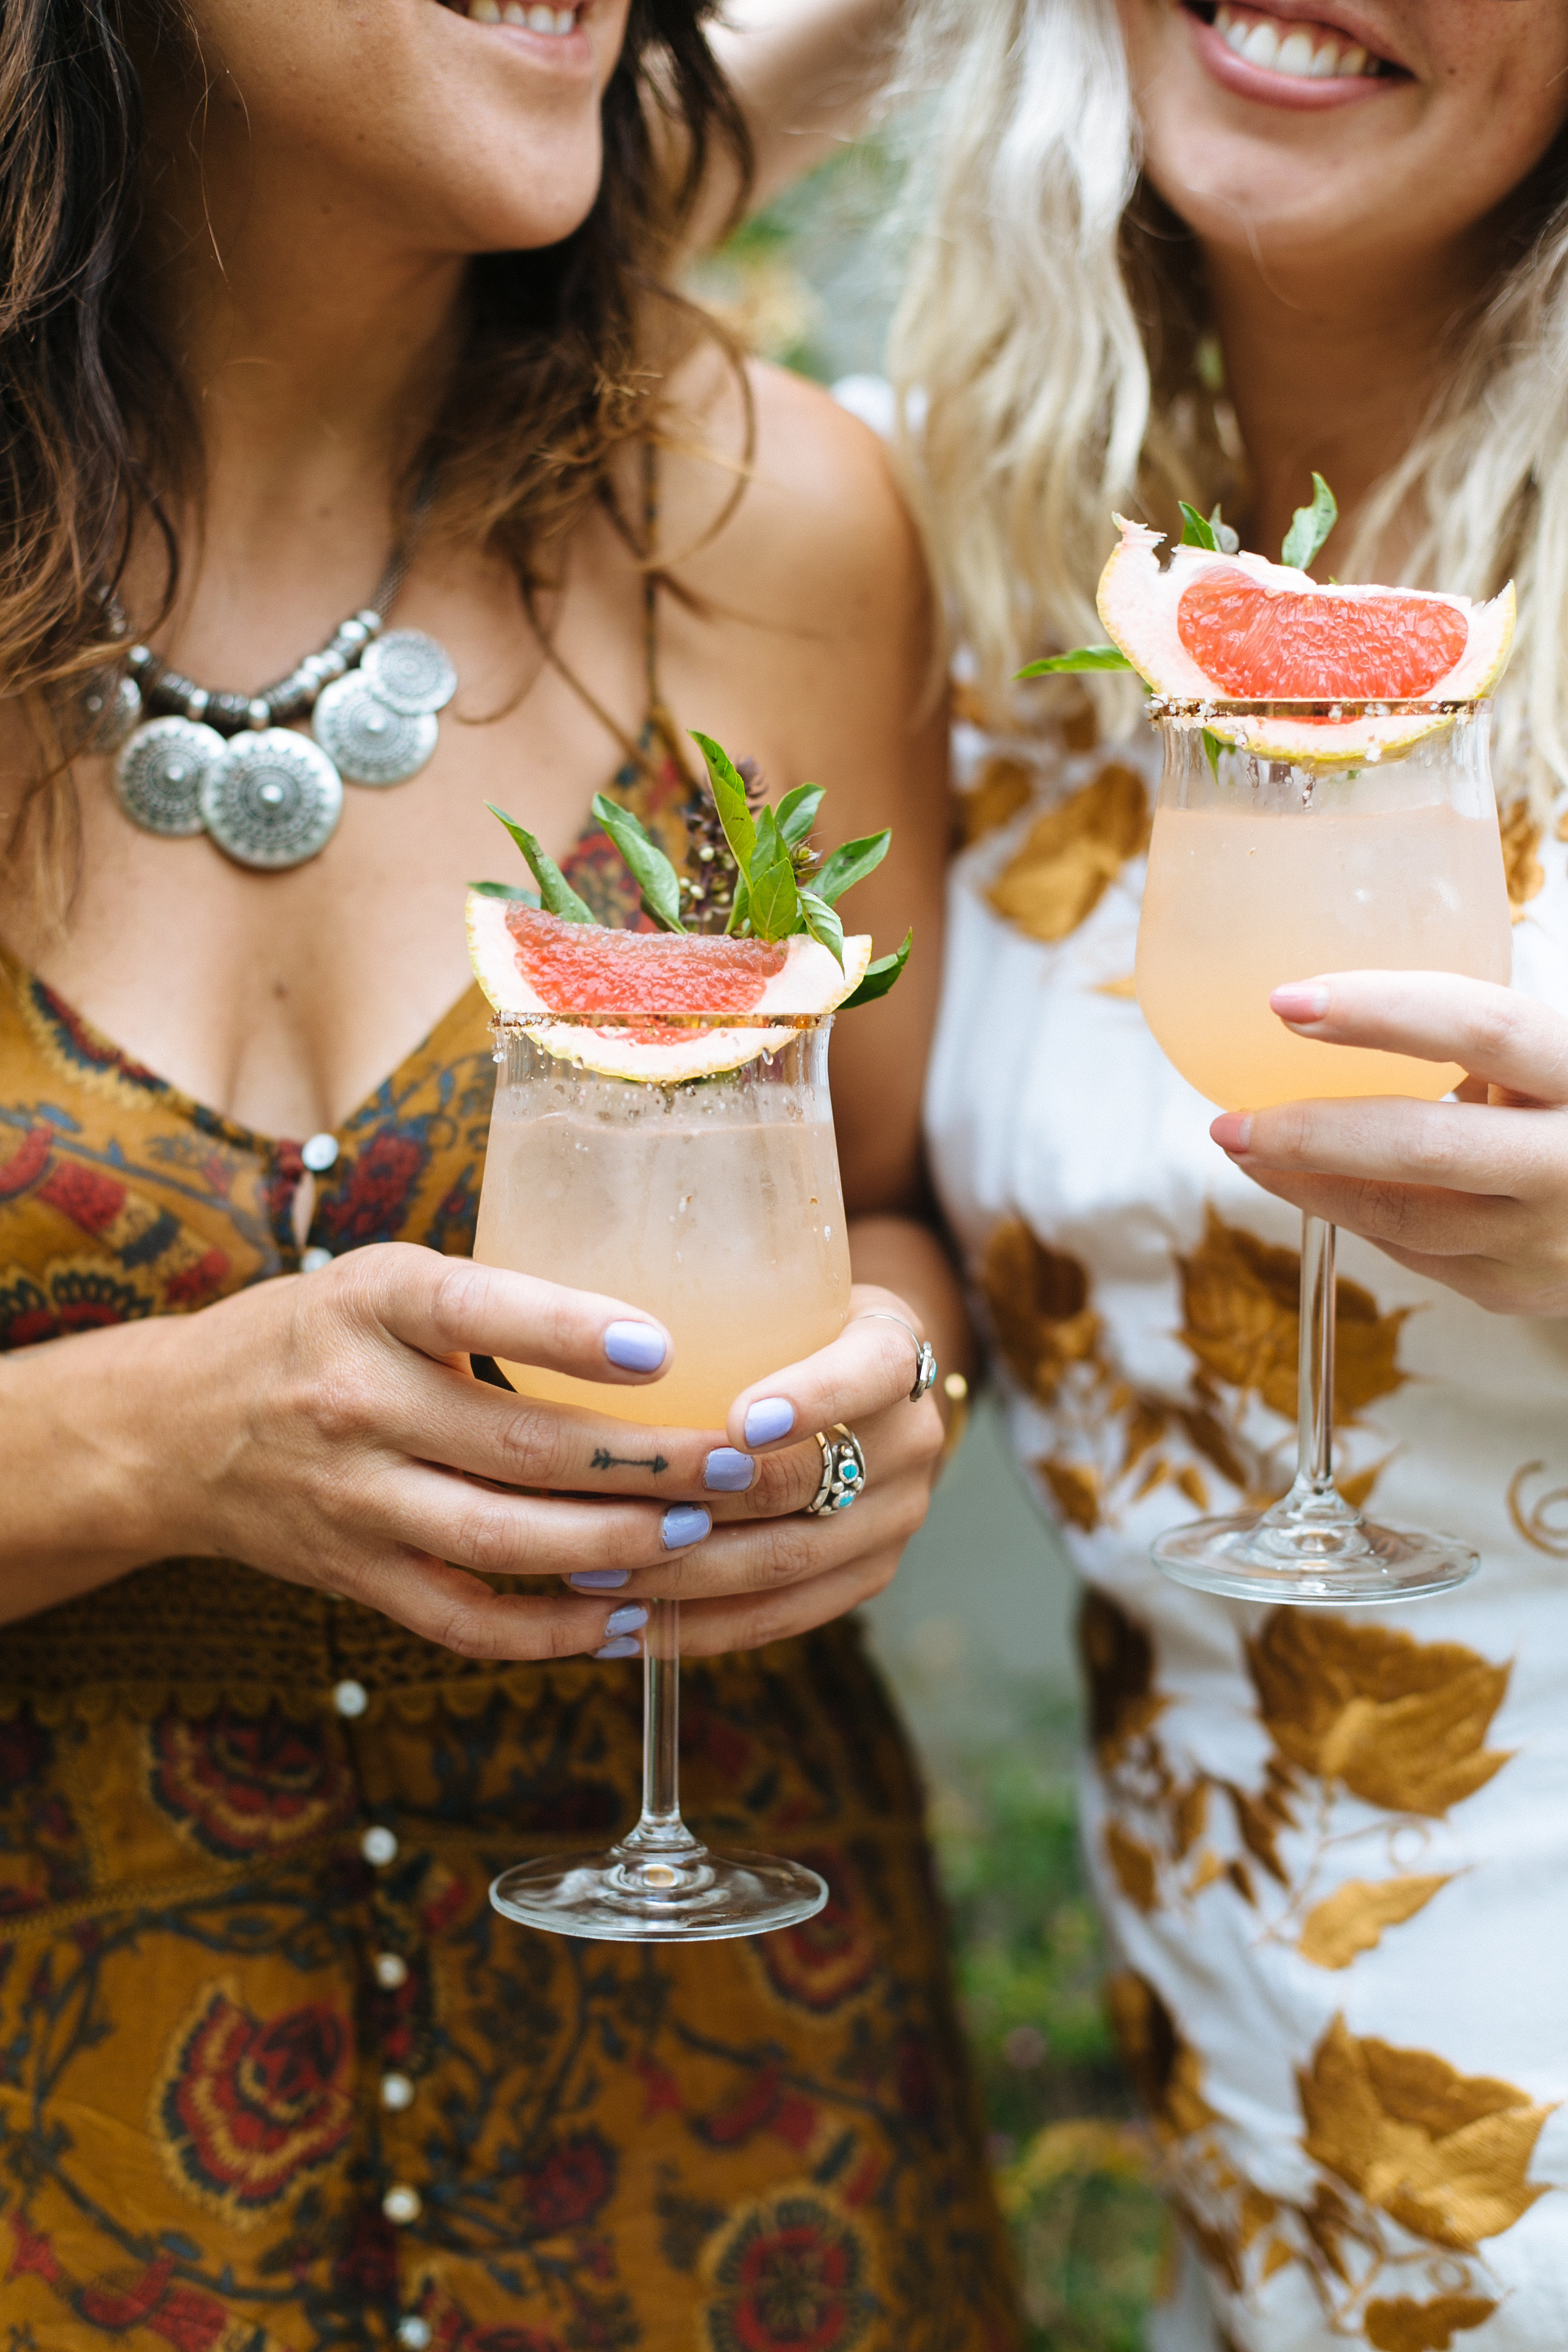 Copy of Two women drinking cocktails with orange slices